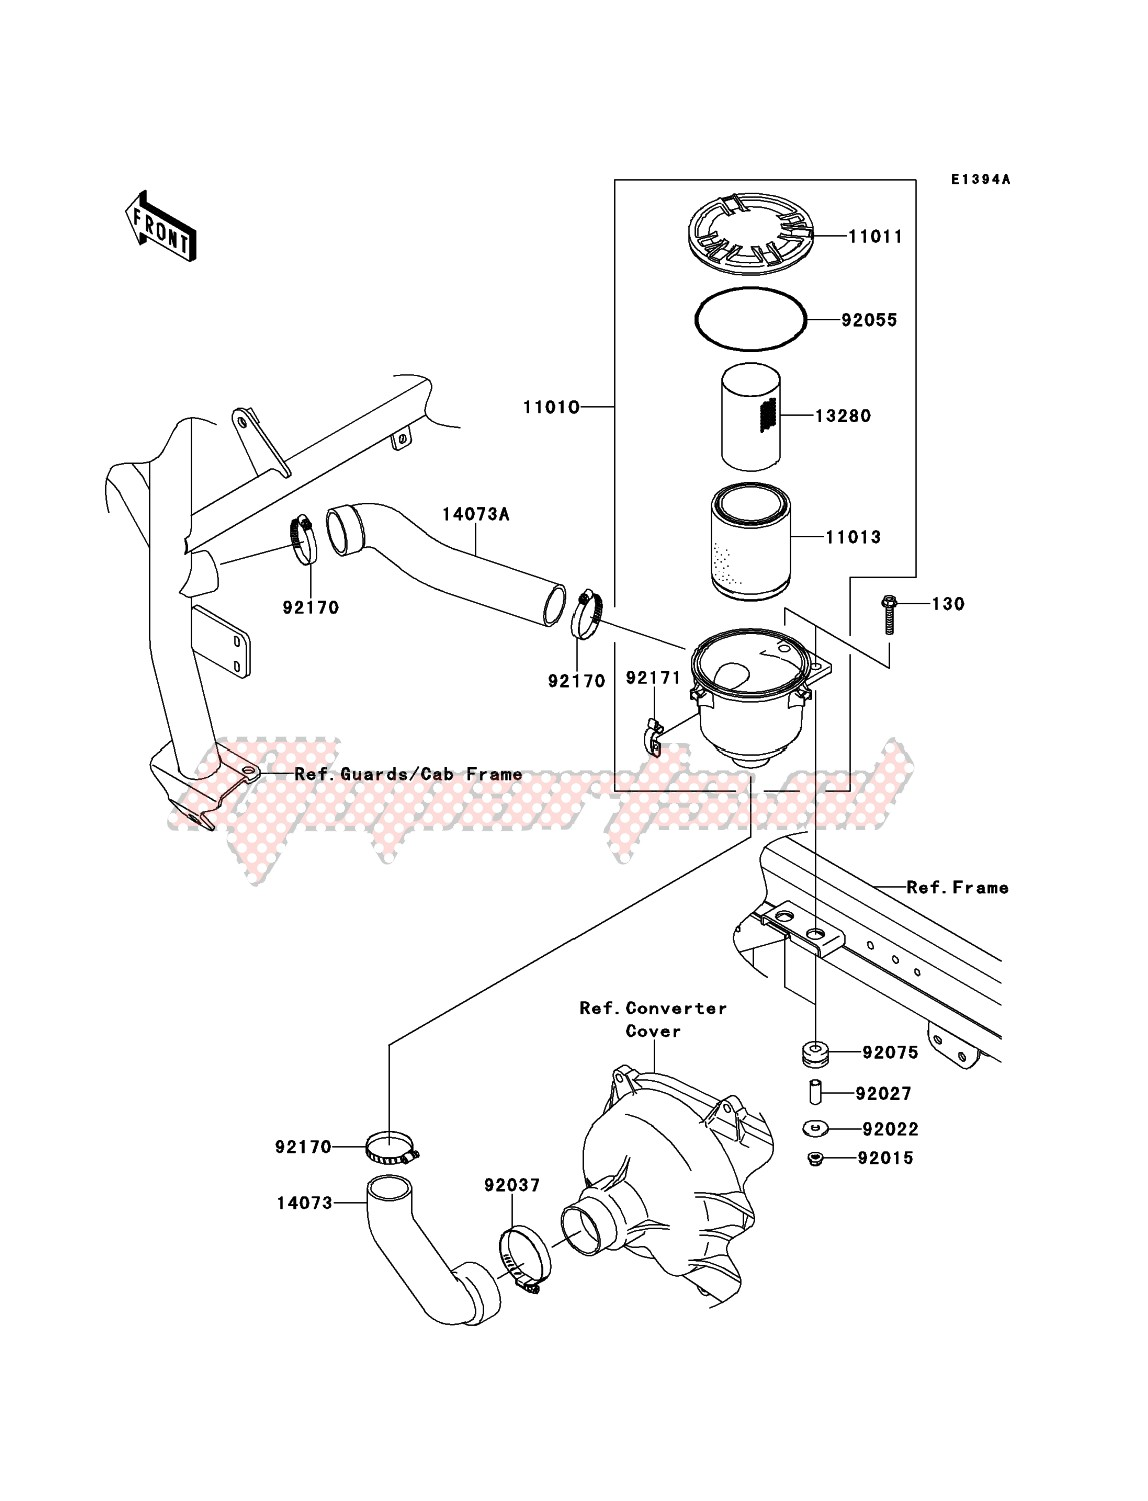 Engine-Air Cleaner-Belt Converter